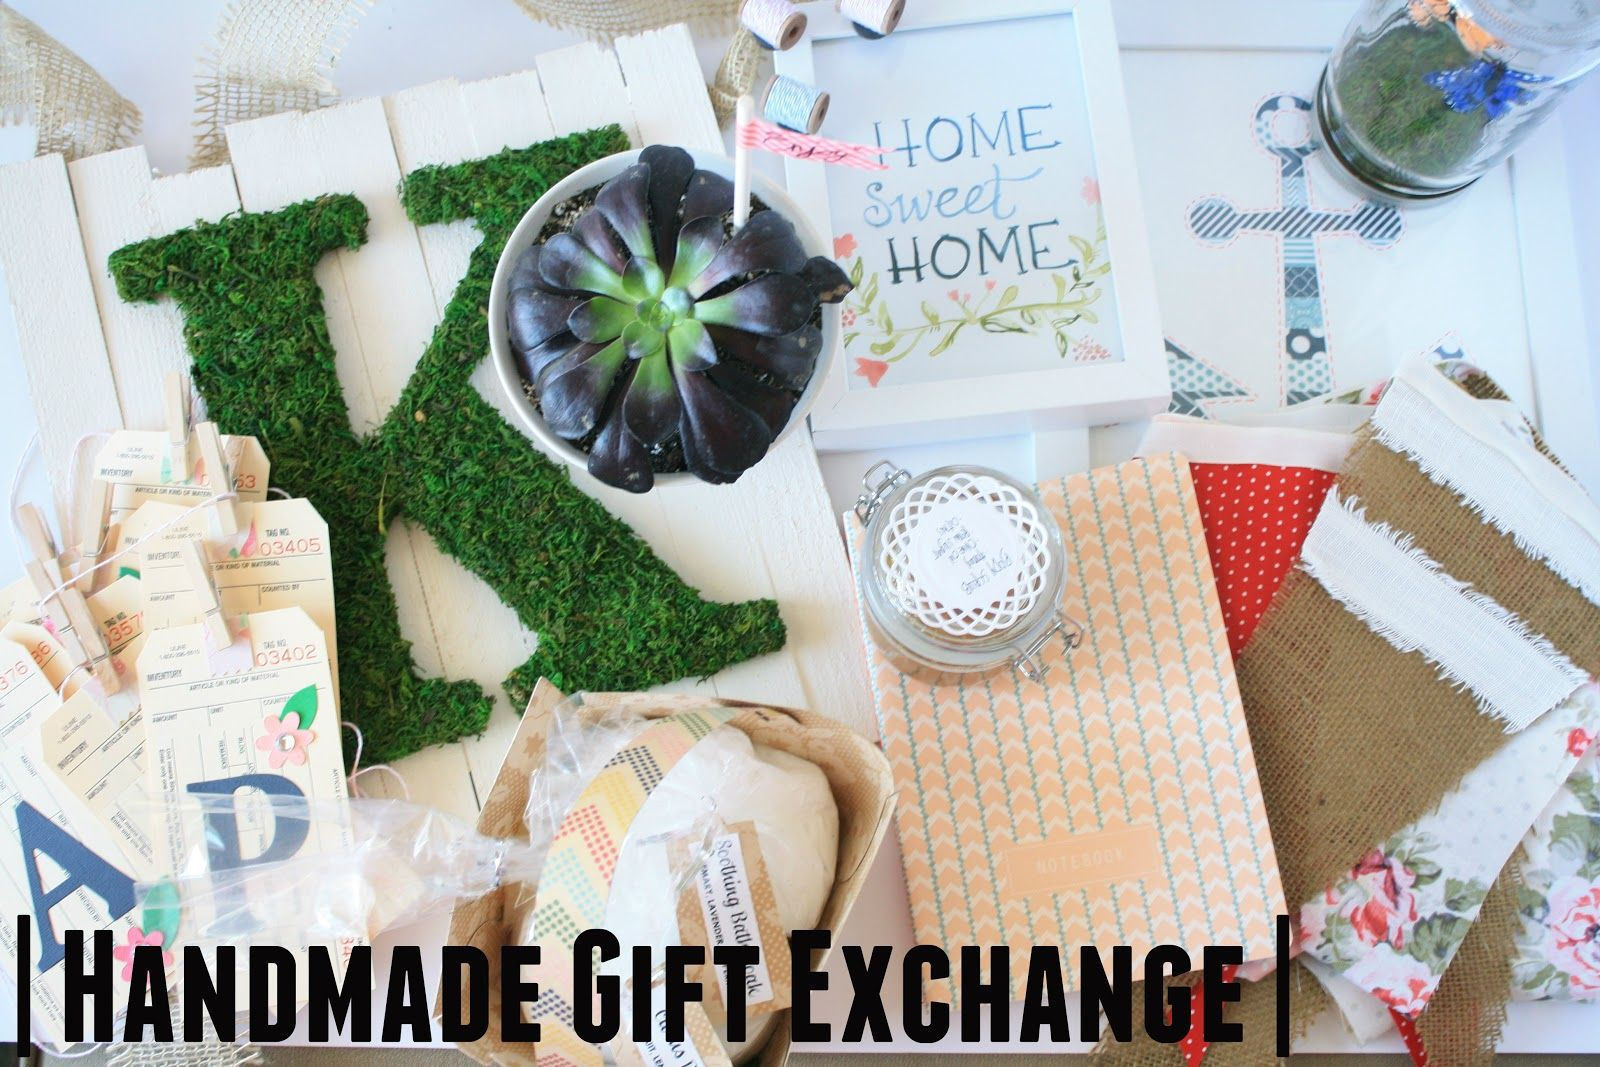 Spring Handmade Gift Exchange from Kirsten Krason at 6th Street Design School